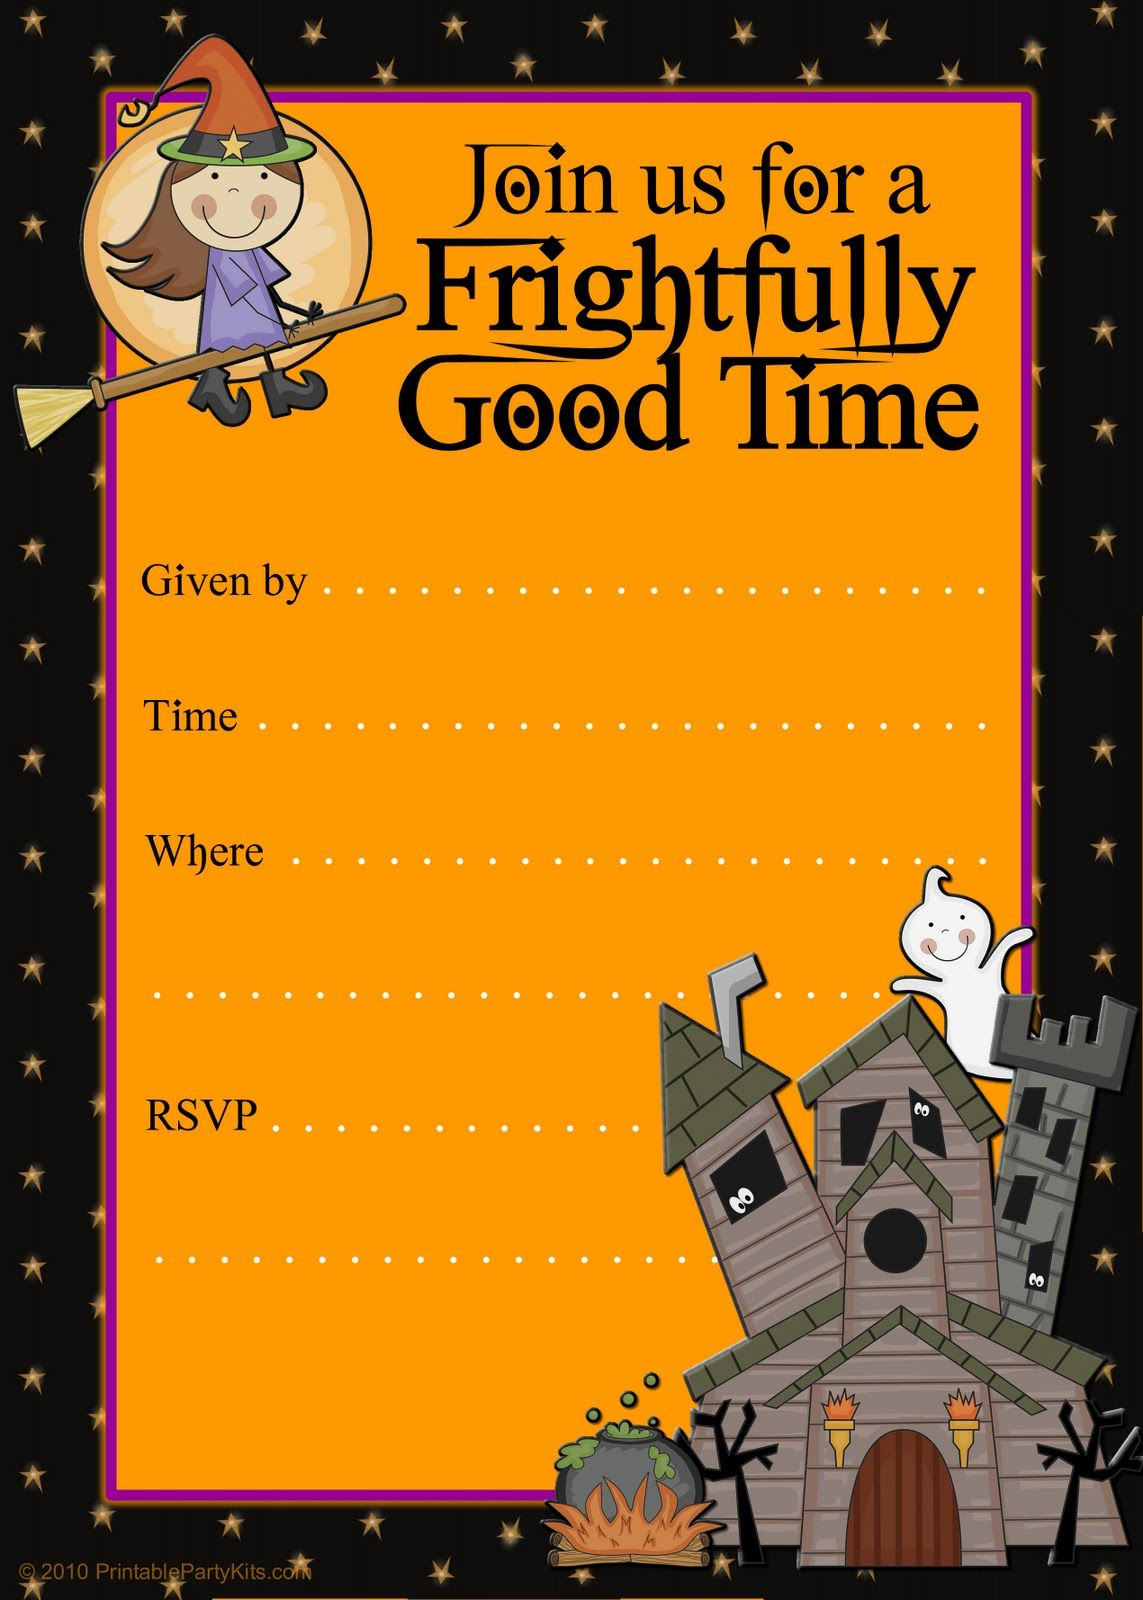 Halloween Party Invitations | Halloween Party Invitation Templates - Free Halloween Birthday Invitation Templates Printable